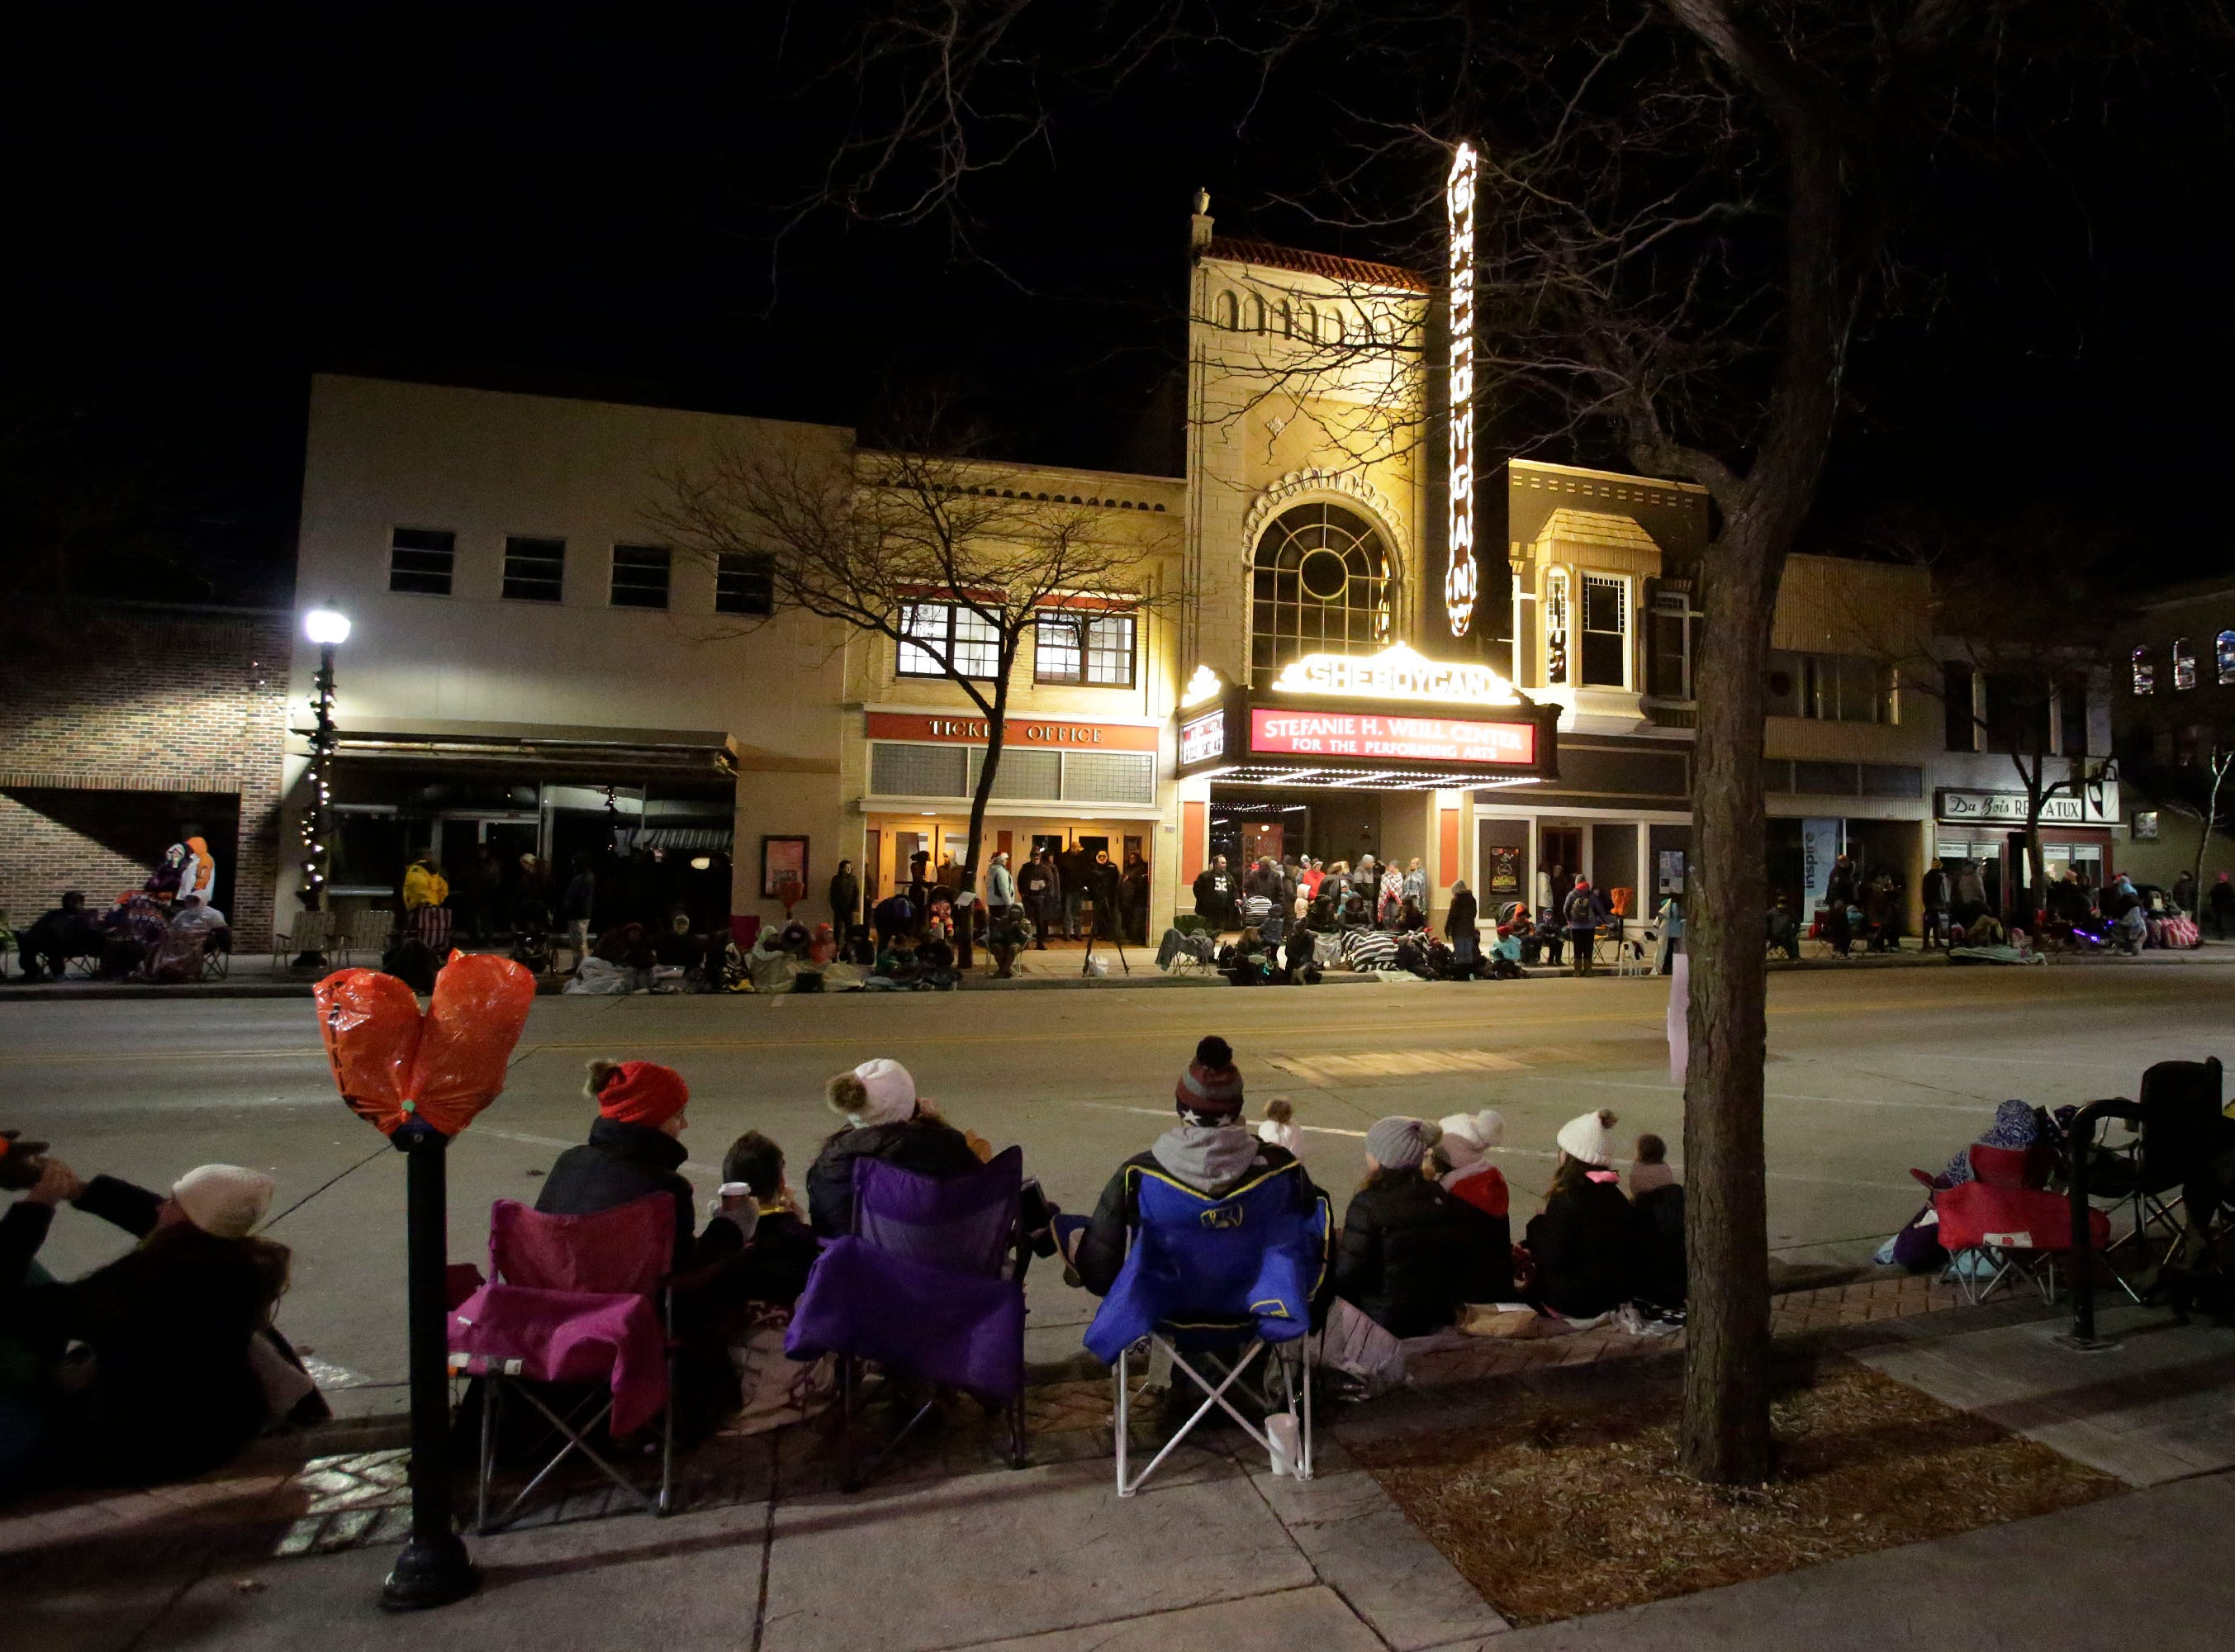 People line North 8th Street by the Stefanie H. Weill Center for the Performing Arts in preparation for the 26th Annual Jaycees Holiday Parade, Sunday, November 25, 2018 in Sheboygan, Wis.